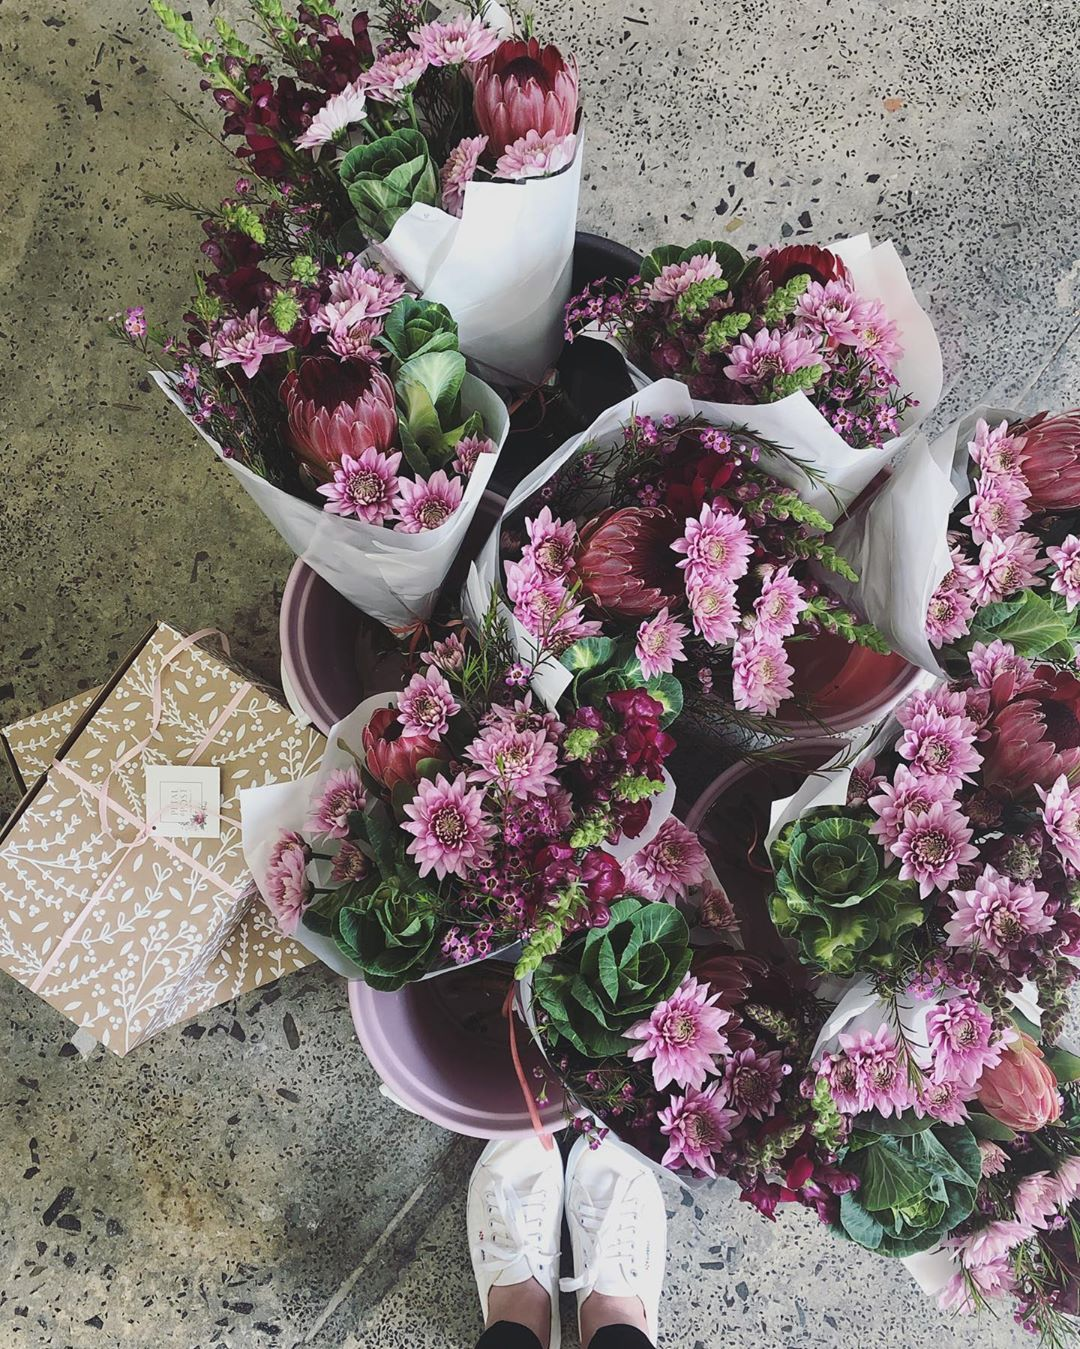 It feels a bit like Christmas in here! Petal&Post Gift Boxes and Kale & Protea Posies for the Durbanville Route.  We have 2 Posies left for delivery today – order quick 🎁 We are closing orders at 2pm today . . . #Petalandpost#capetown#capetownflorist#lovezabuyza#localzadesign#lovelocalza#hellopretty#capetownmag#cylcollective #capetownlikes#supportlocal#posylove#wedding#local#botanical#theprettyblog#gardenday#capetowninfo#handmadeincapetown#madeinsouthafrica#lokalza#durbanville#proudlysouthafrican